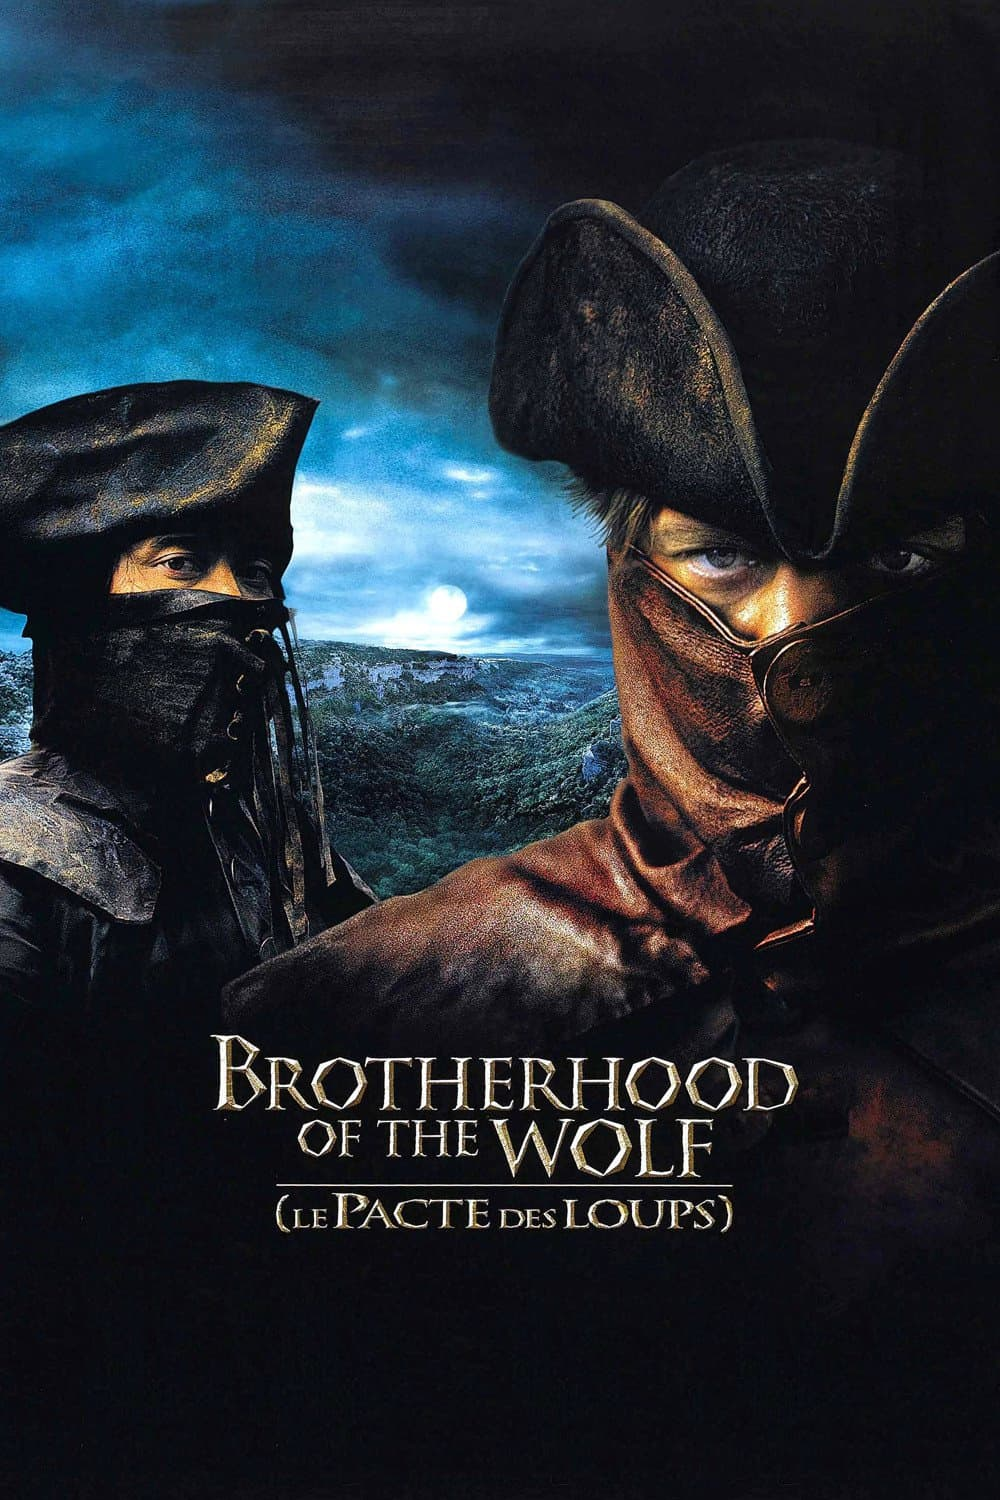 Brotherhood of the Wolf, 2001